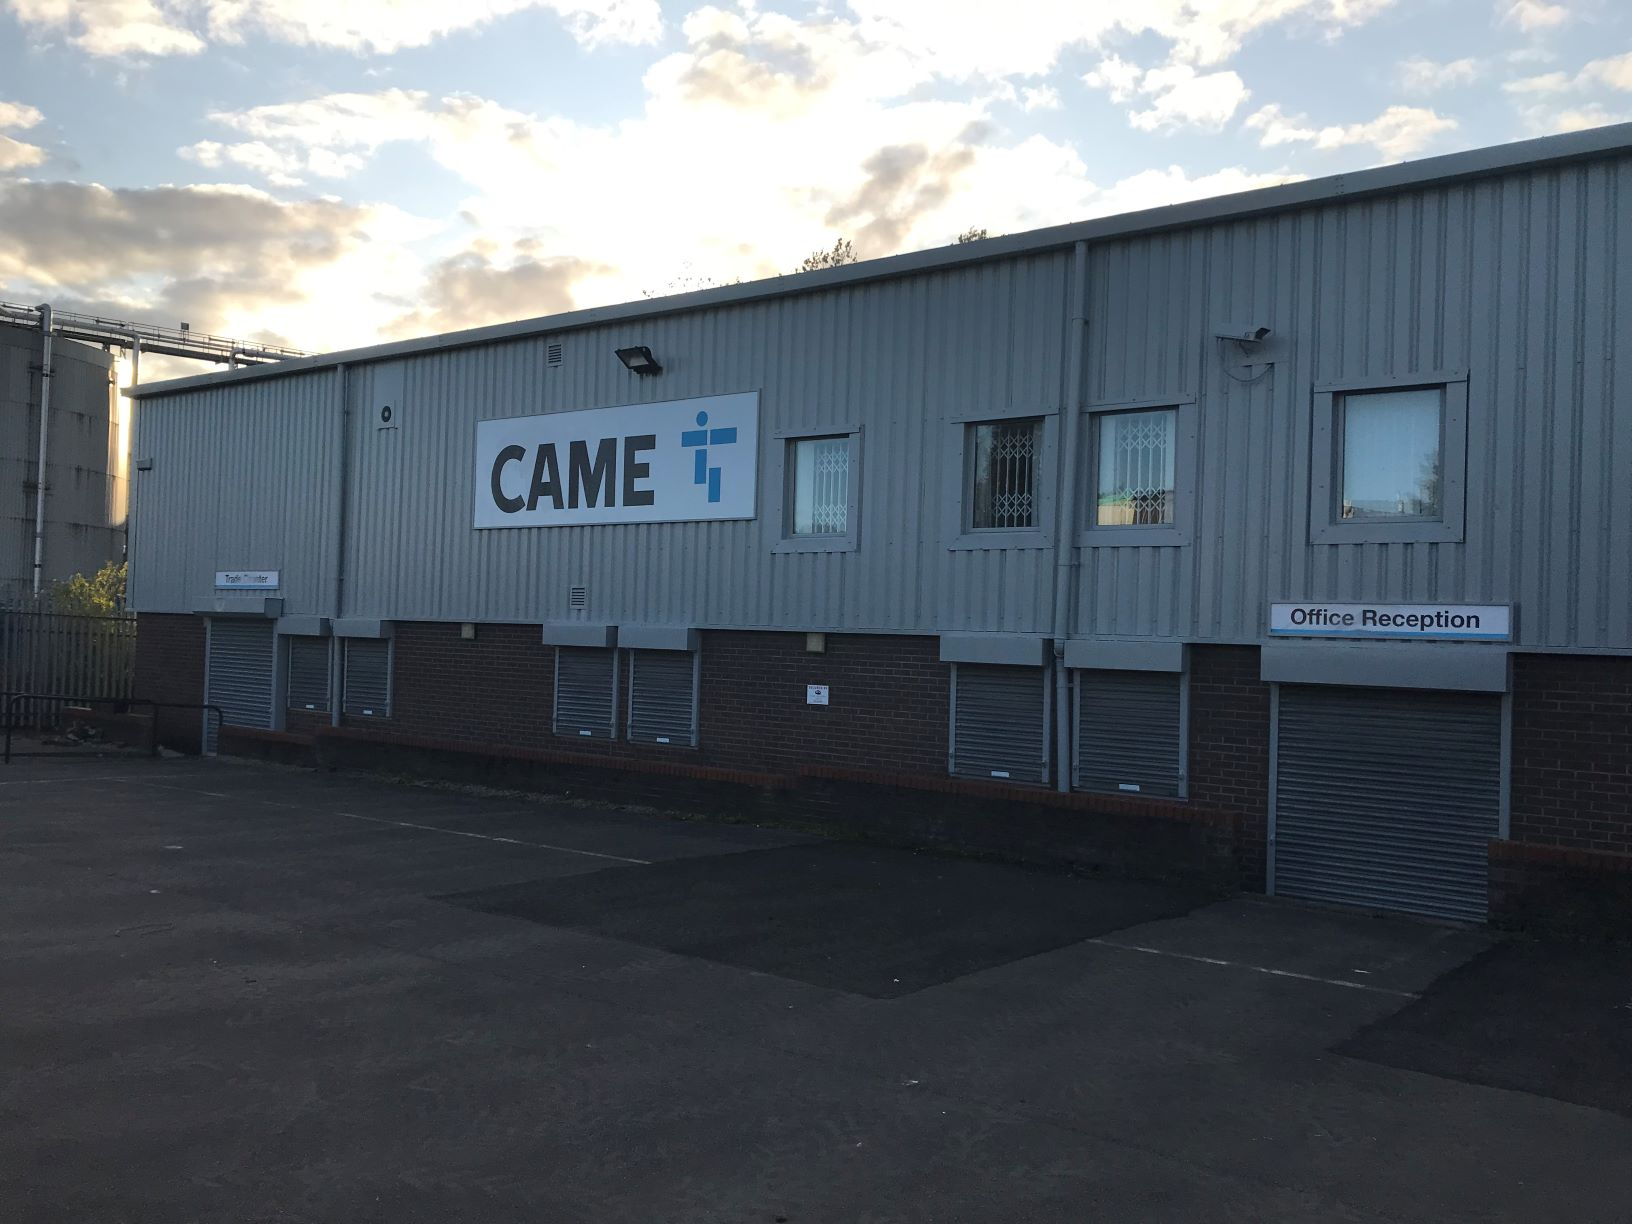 Online Auctioneer to open third site in Stockport as PAI members work together